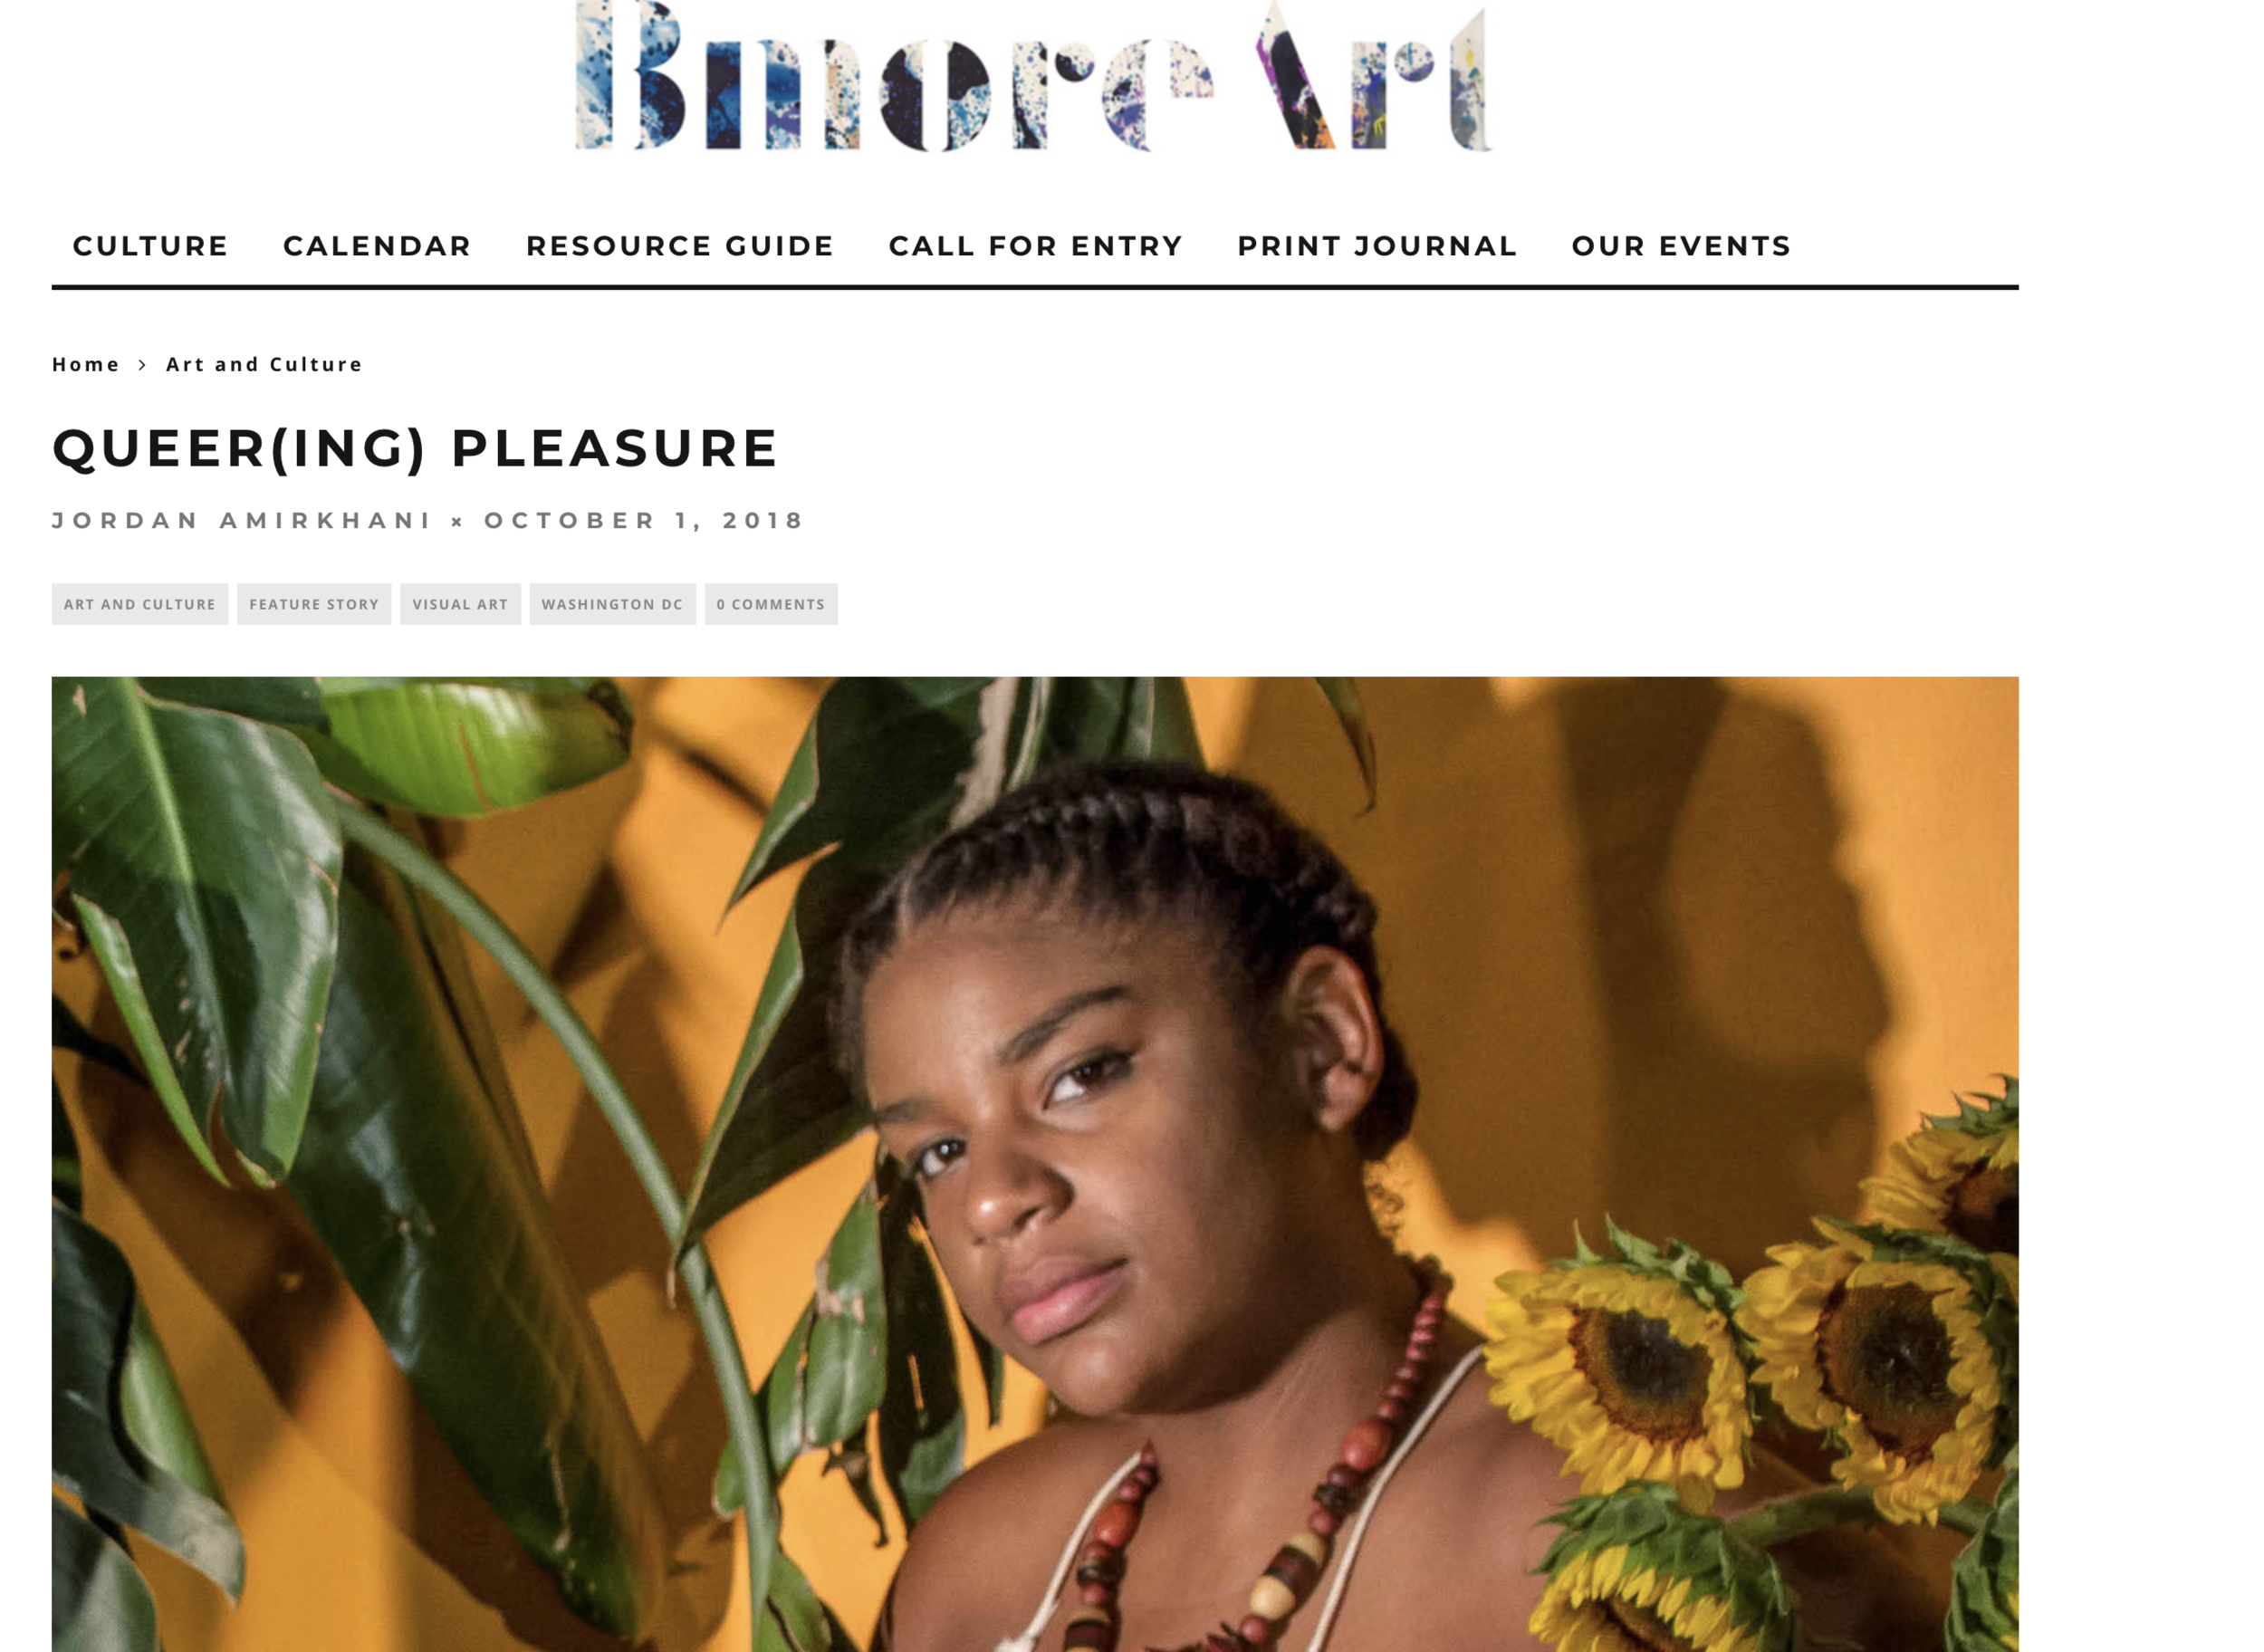 """QUEER(ING) PLEASURE - JORDAN AMIRKHANI OCTOBER 1, 2018"""" However, the explosive and dynamic condition of queerness and bodily pleasure is articulated the most magnanimously in the examples of queer women of color represented in the show. Monique """"Muse"""" Dodd's luminous photographs of take on the quieter (but no less radical) conditions of self-care, healing, and spirituality to construct an image of queerness that is open and inclusive, yet attentive to the specific needs and histories of black persons within white heteronormative patriarchal culture. """""""